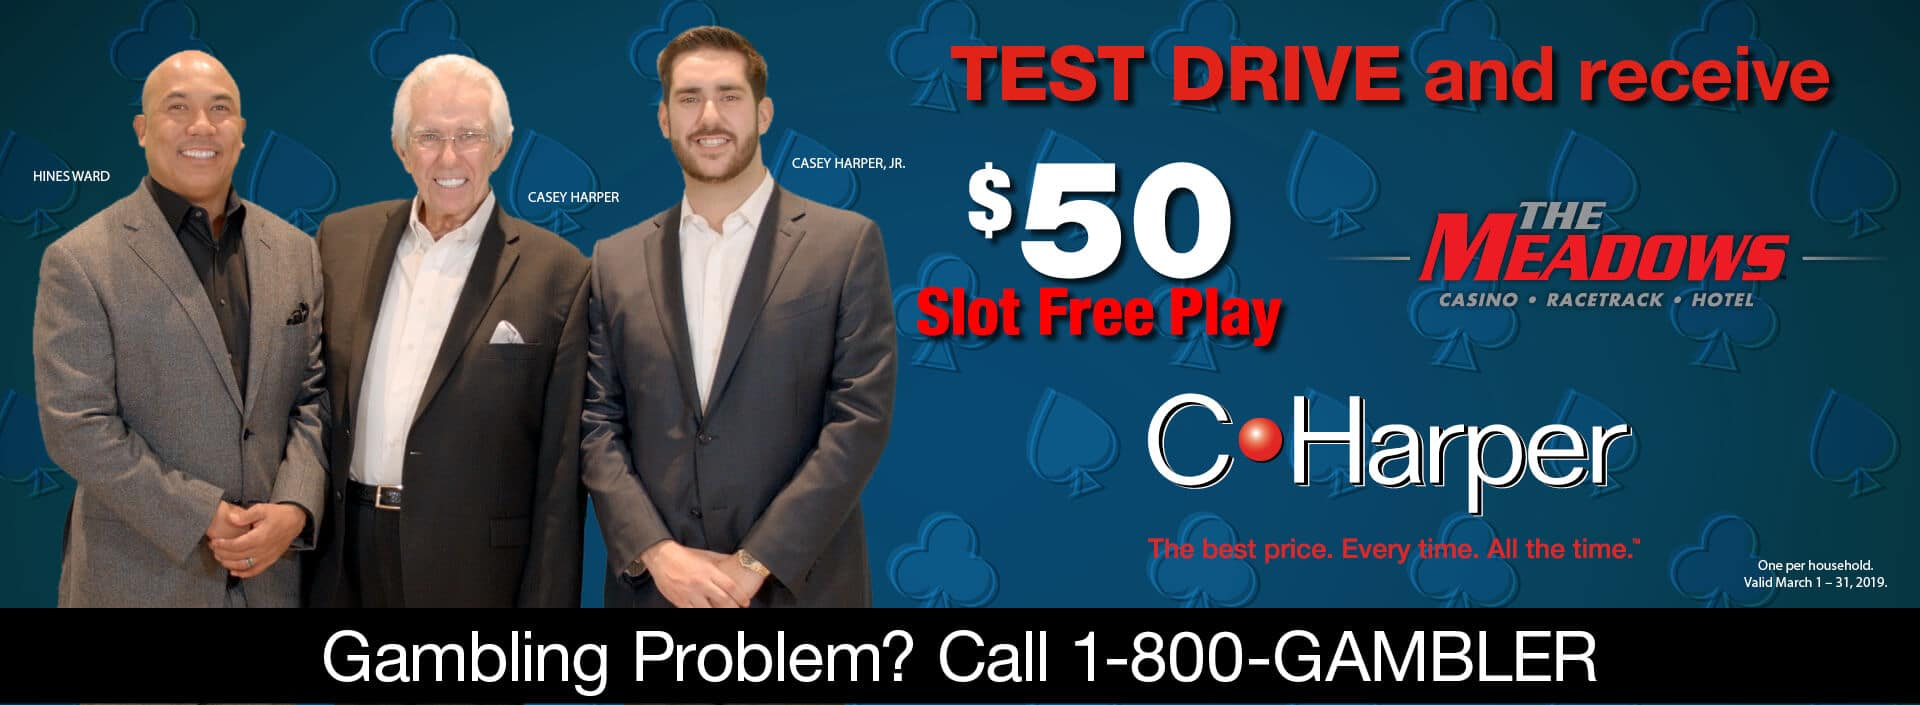 Test drive and receive $50 Slot Free Play at The Meadows